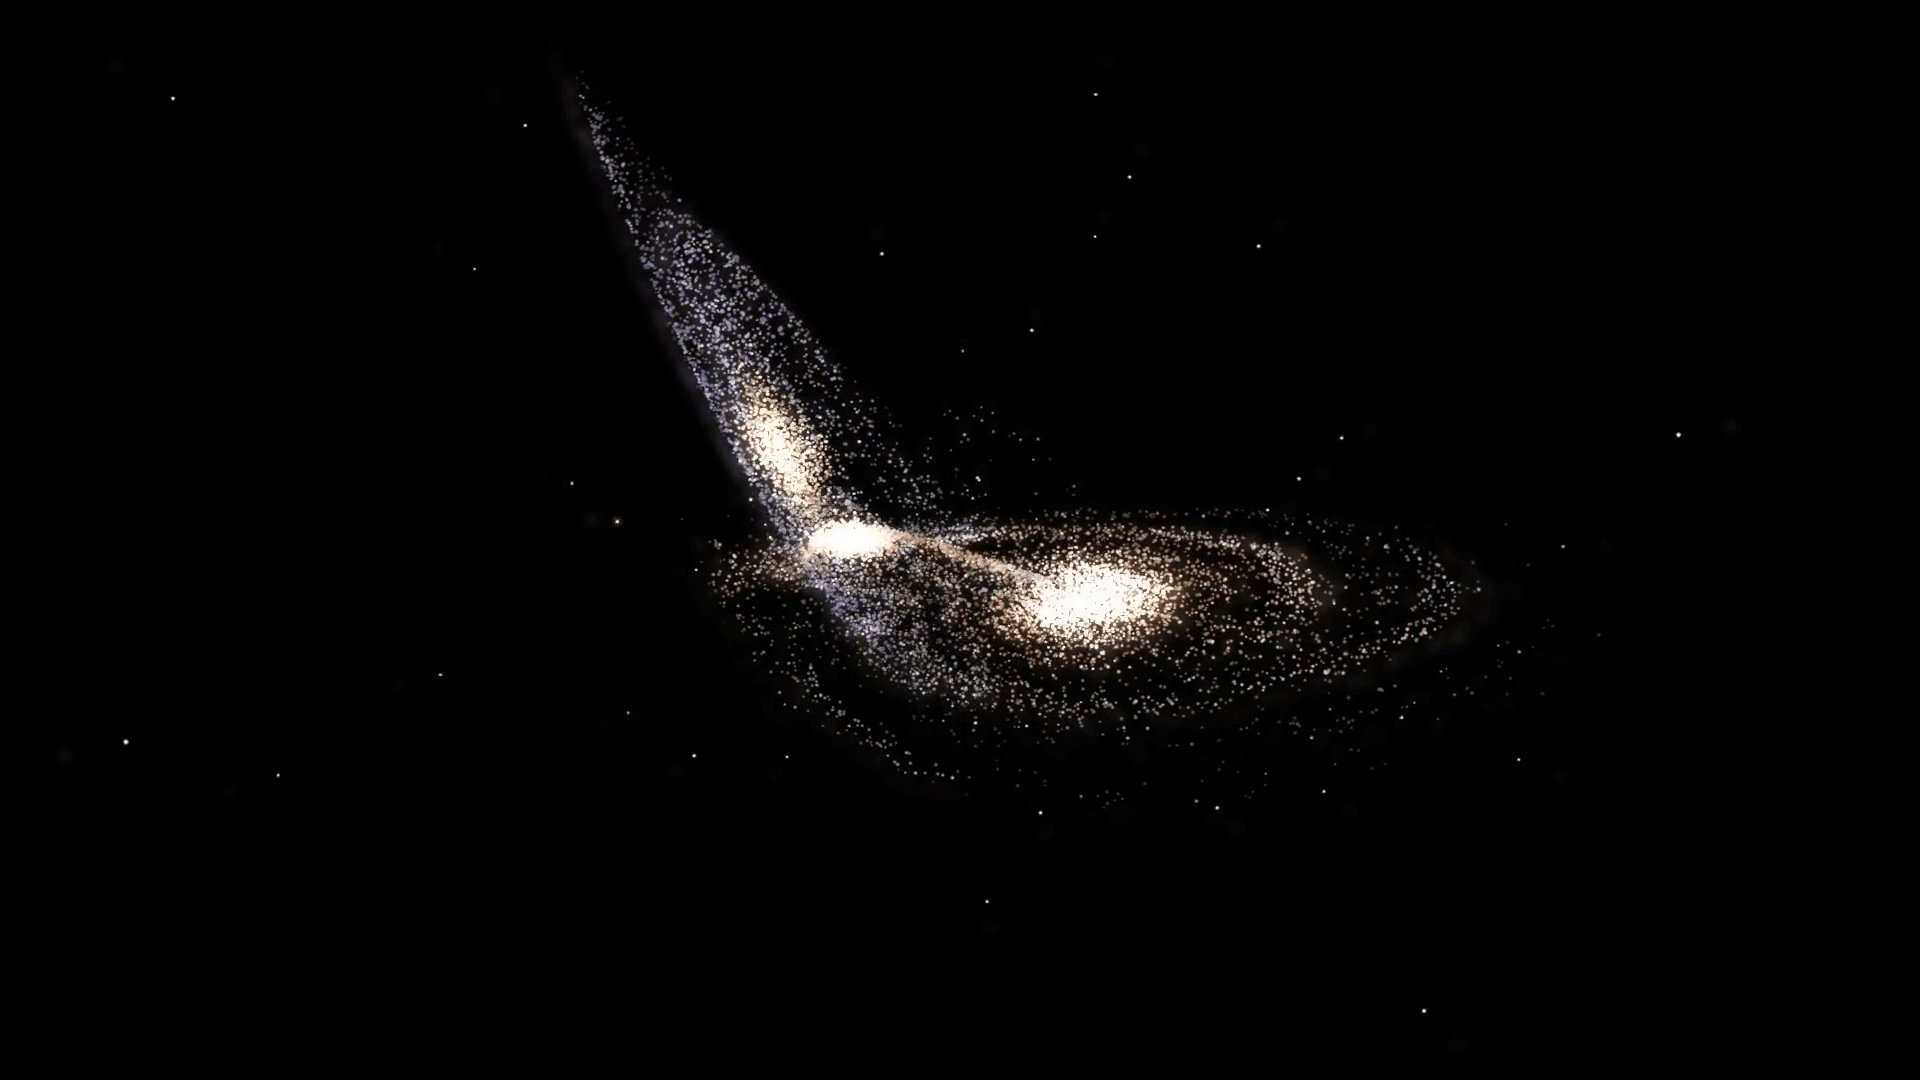 What can it tell us about dark matter collision of galaxies?